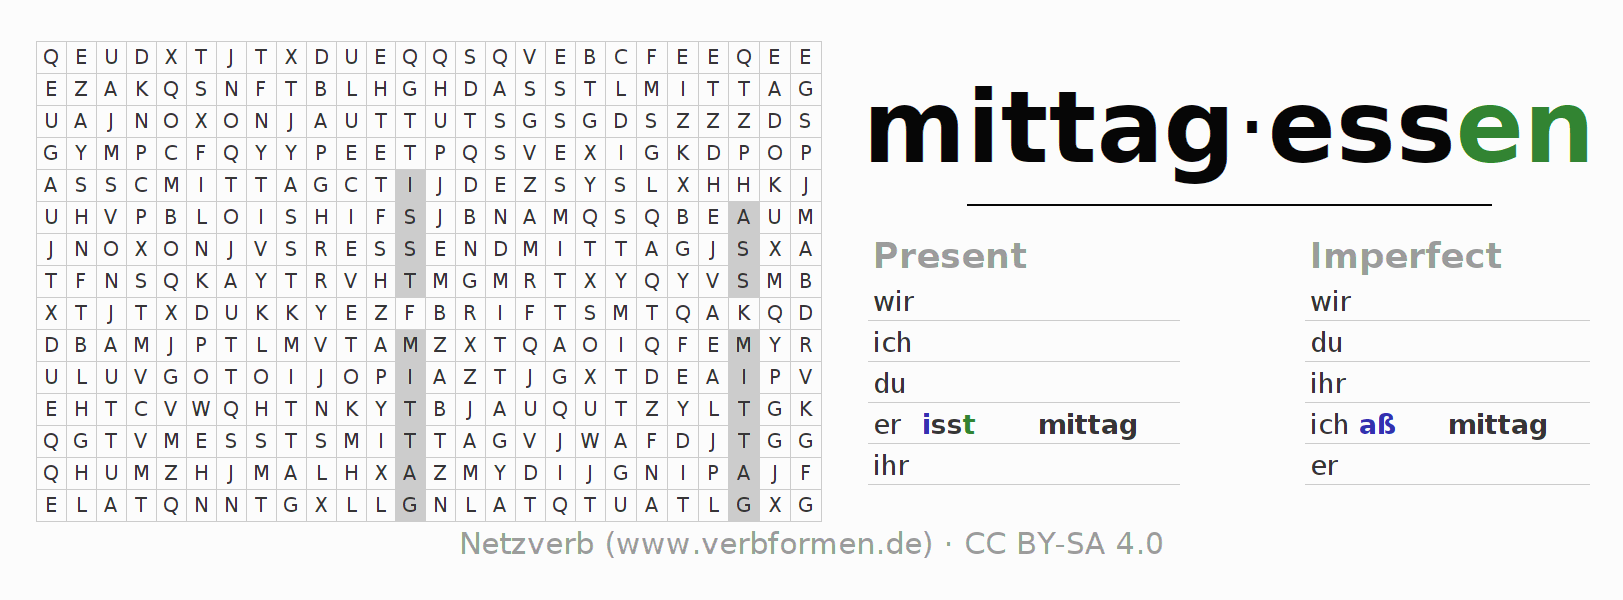 Word search puzzle for the conjugation of the verb mittagessen